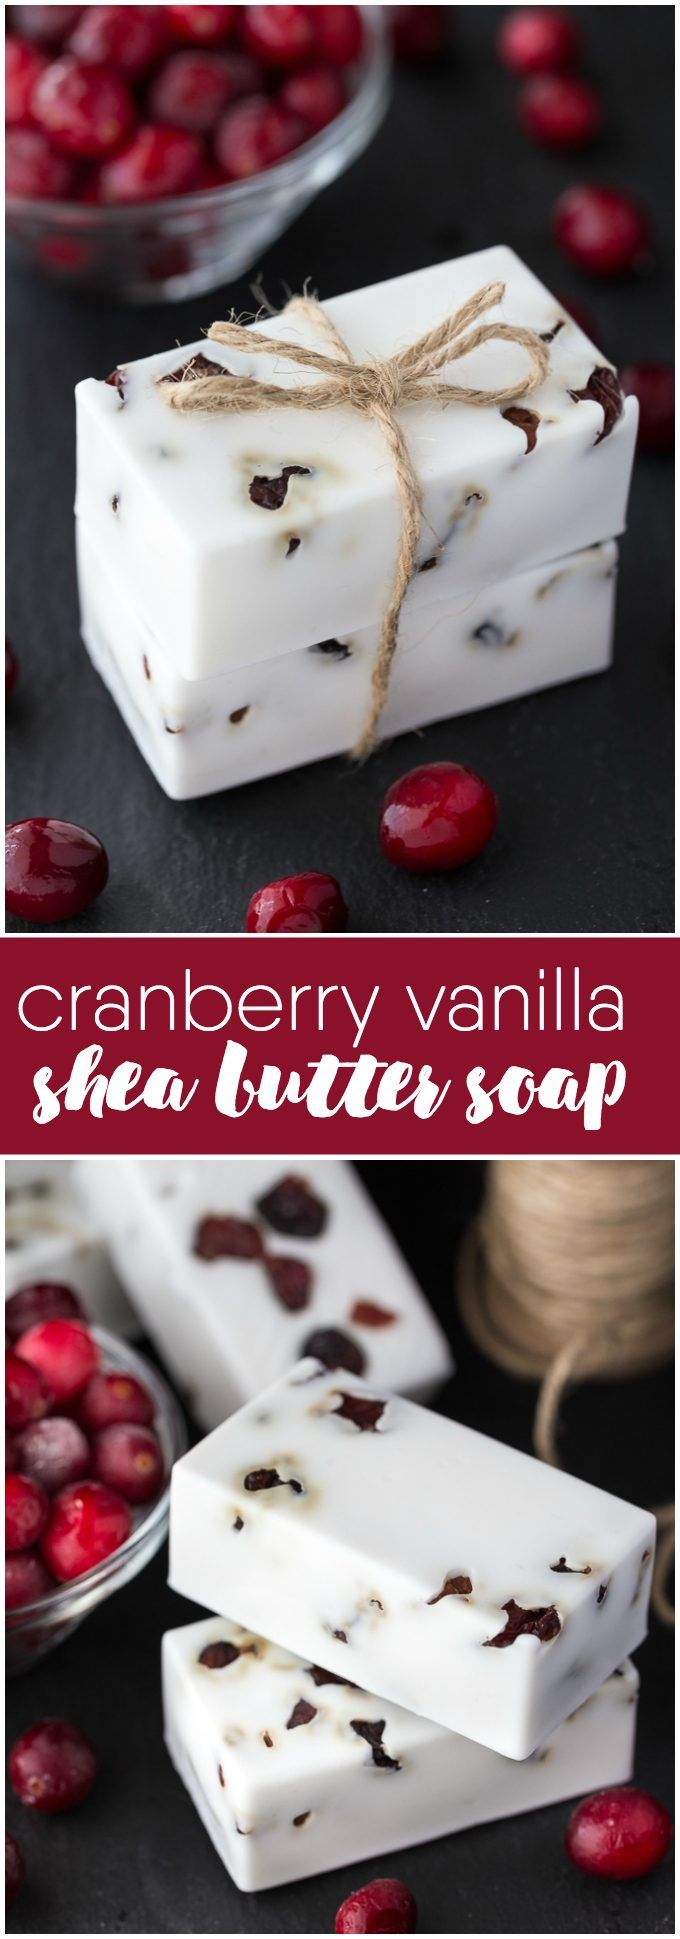 best natural soaps and lotions images on pinterest diy beauty